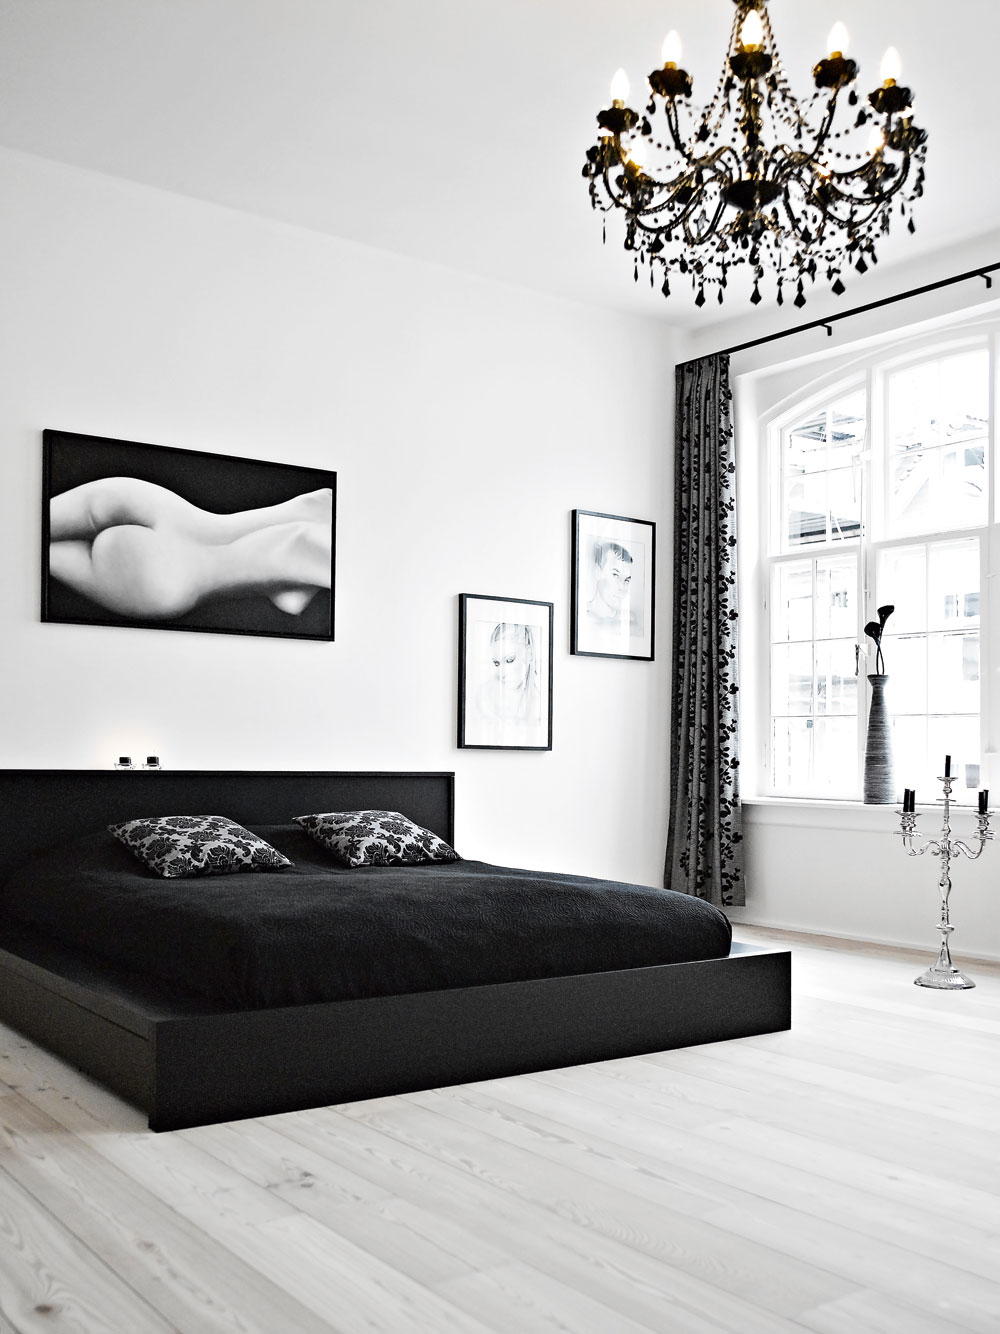 Bedroom designs ideas black and white - Bedroom Designs Ideas Black And White 17